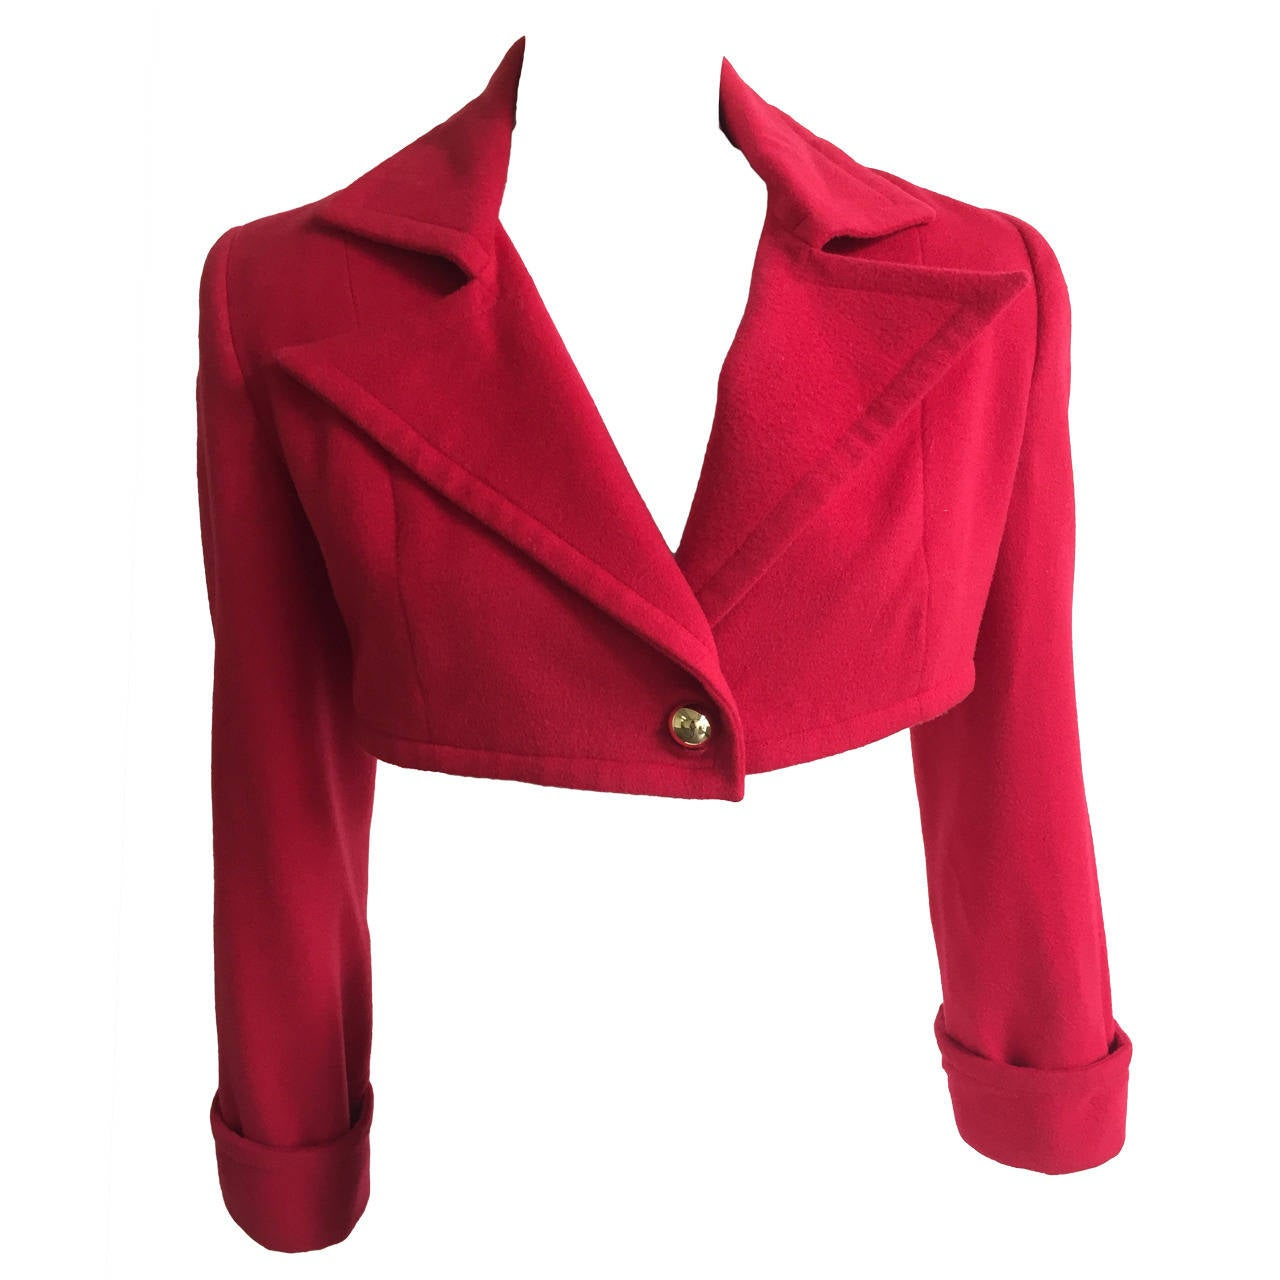 Patrick Kelly Paris 1988 red cropped jacket size 6. For Sale